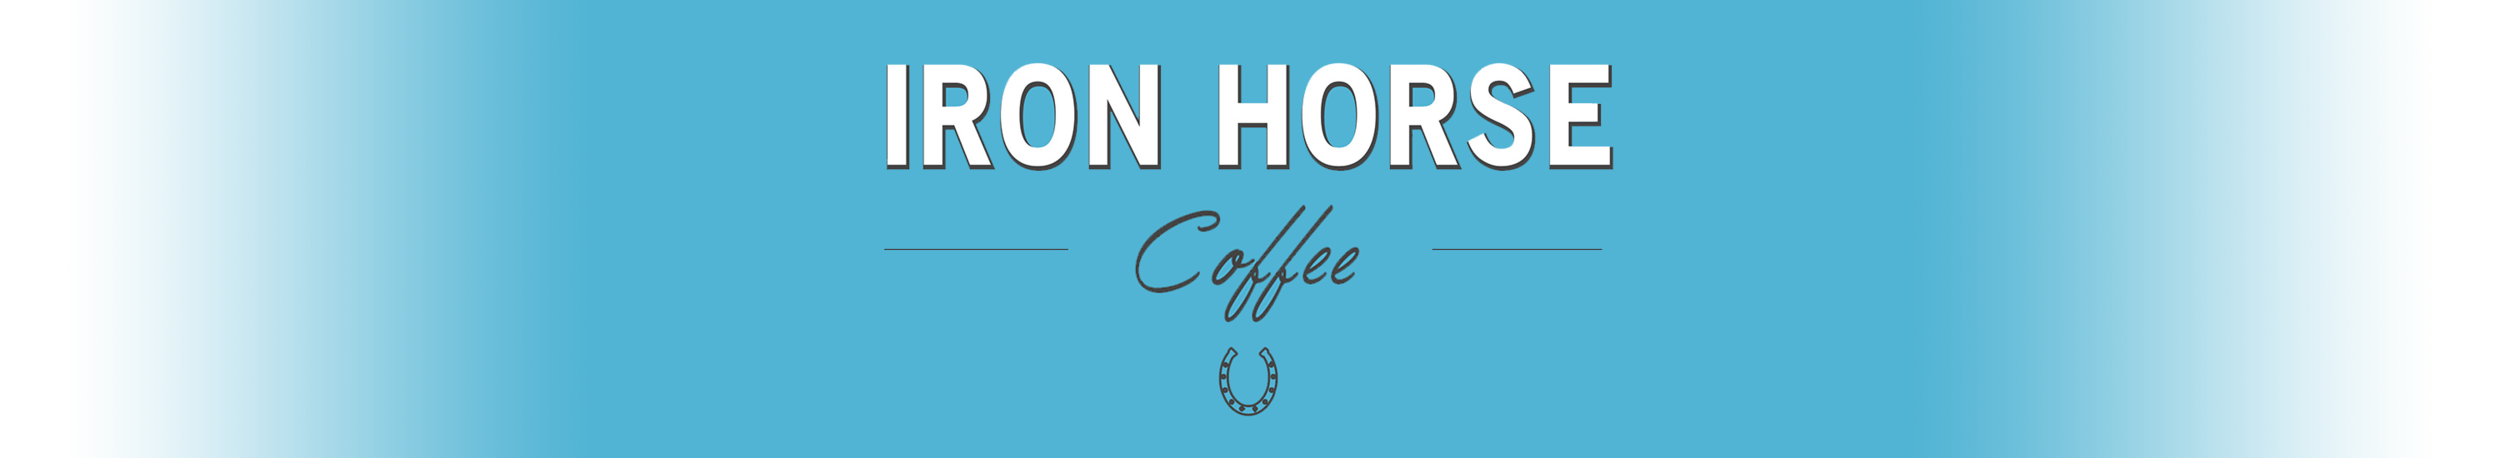 Iron-Horse-COFFEE-banner-small-TRANSP-v3.png